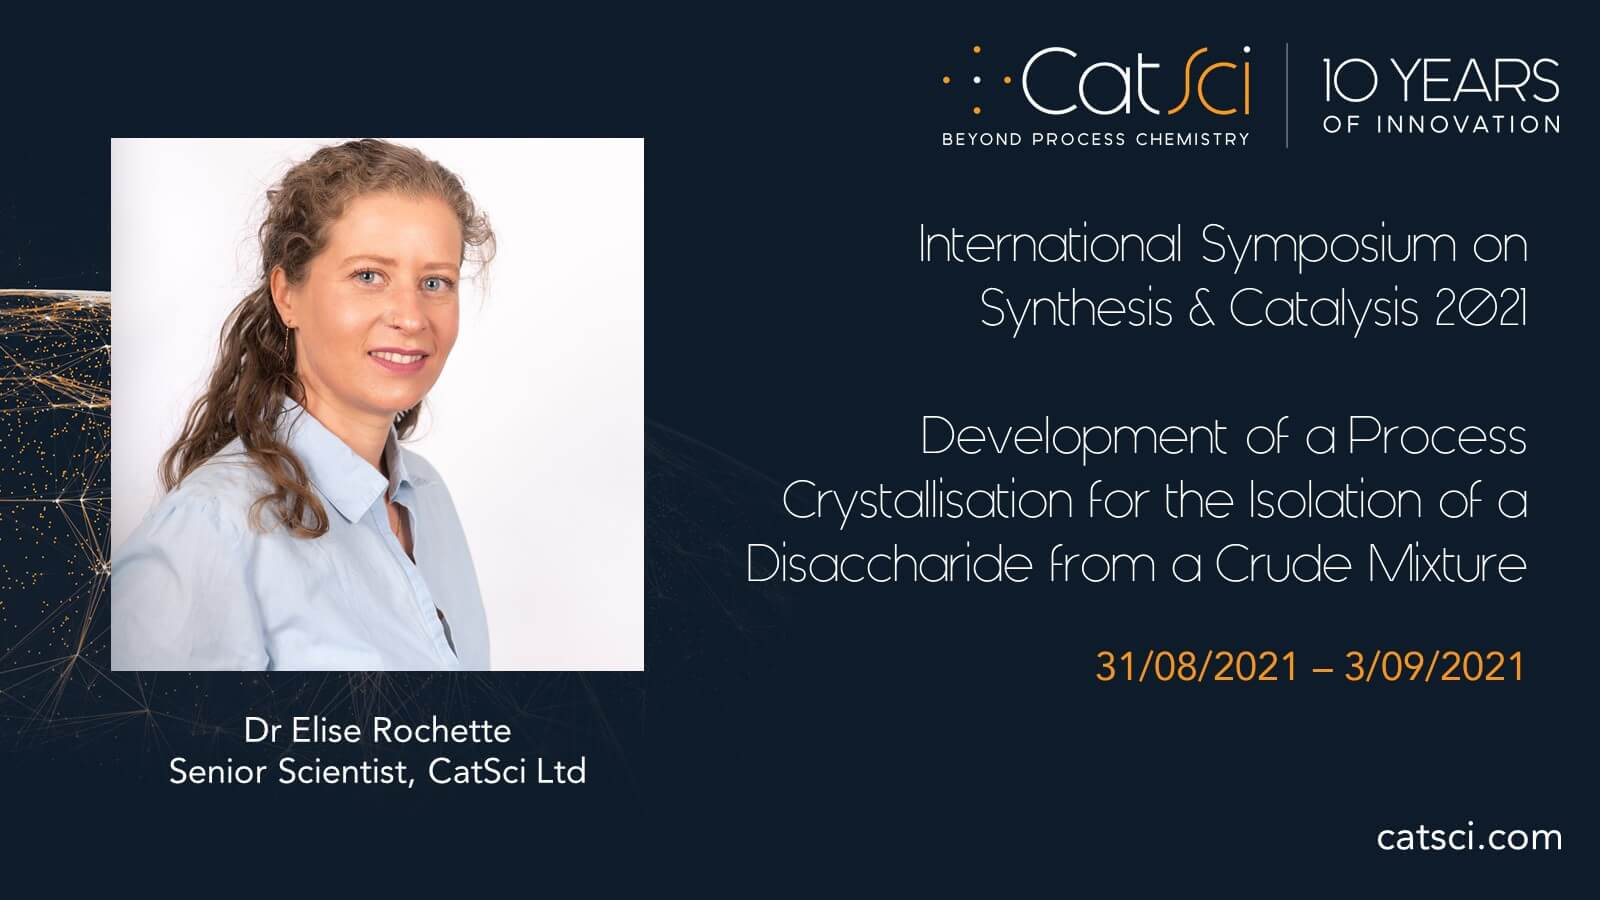 CatSci Senior Scientist, Dr Elise Rochette, to present at the International Symposium on Synthesis and Catalysis 2021 (ISySyCat2021)